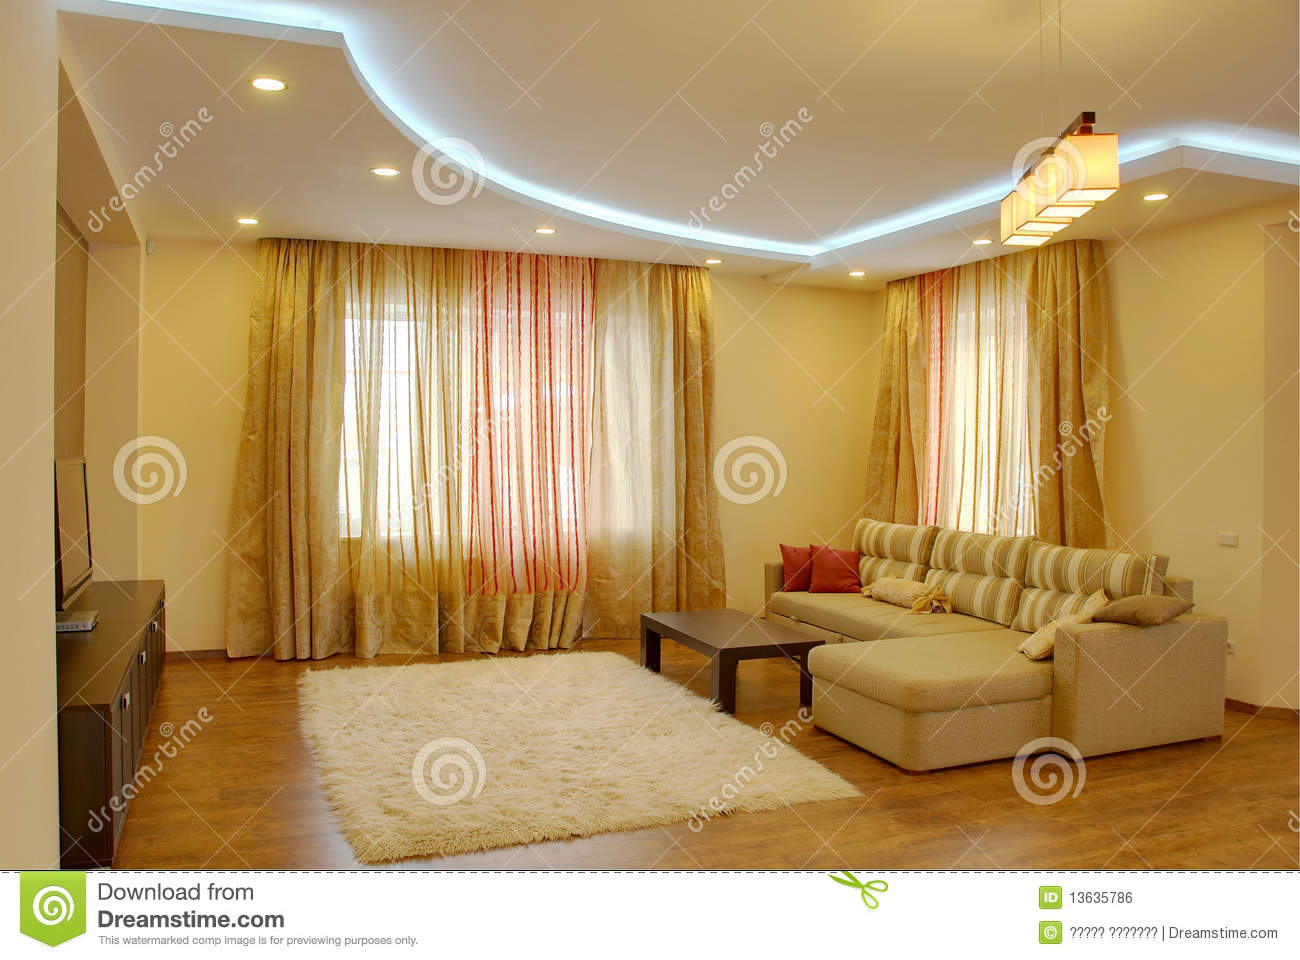 Interior Design Photos Royalty Free Stock Image - Image ...